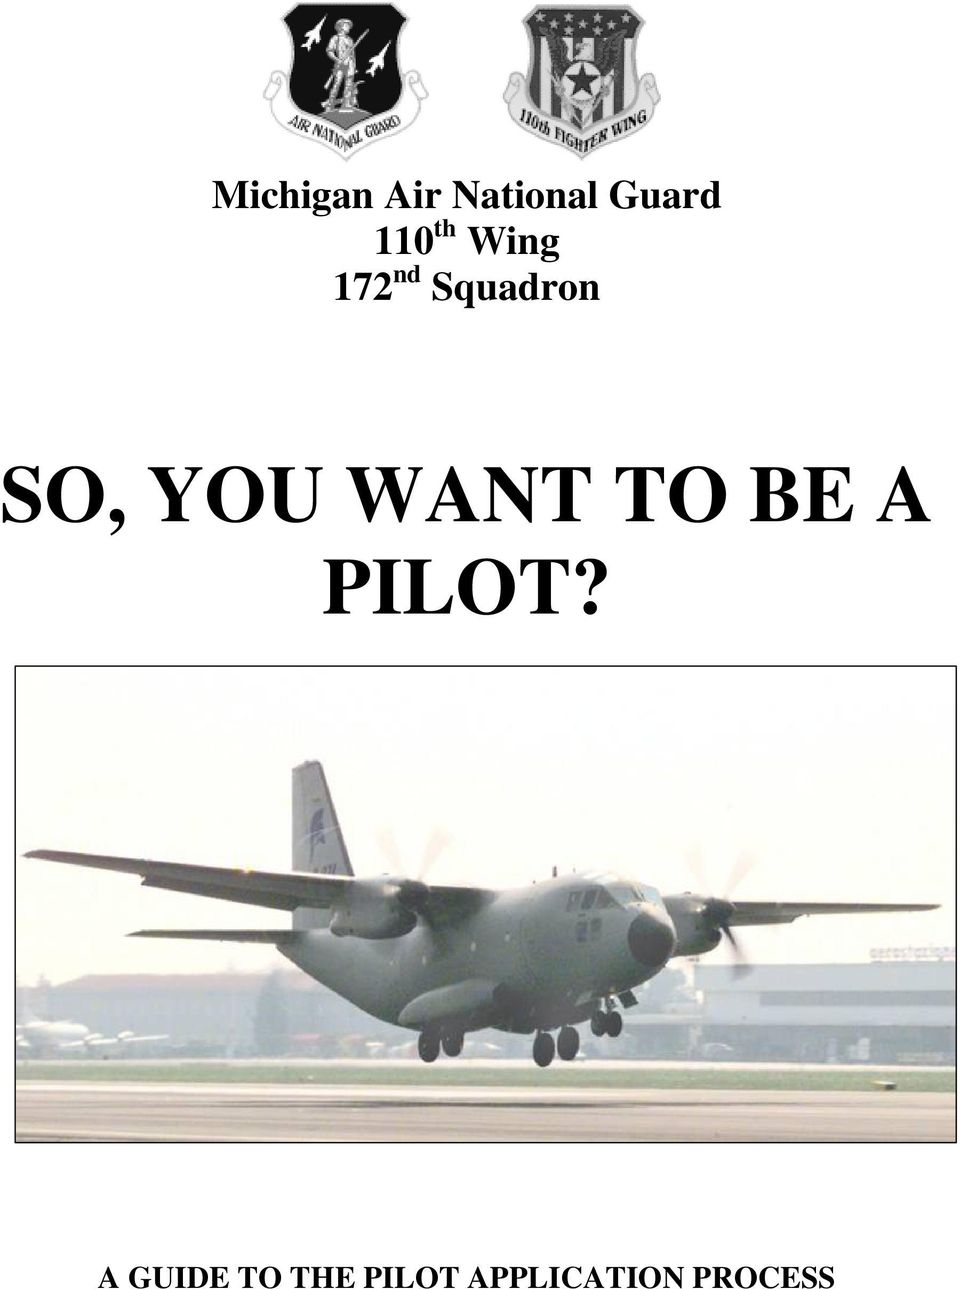 SO, YOU WANT TO BE A PILOT?